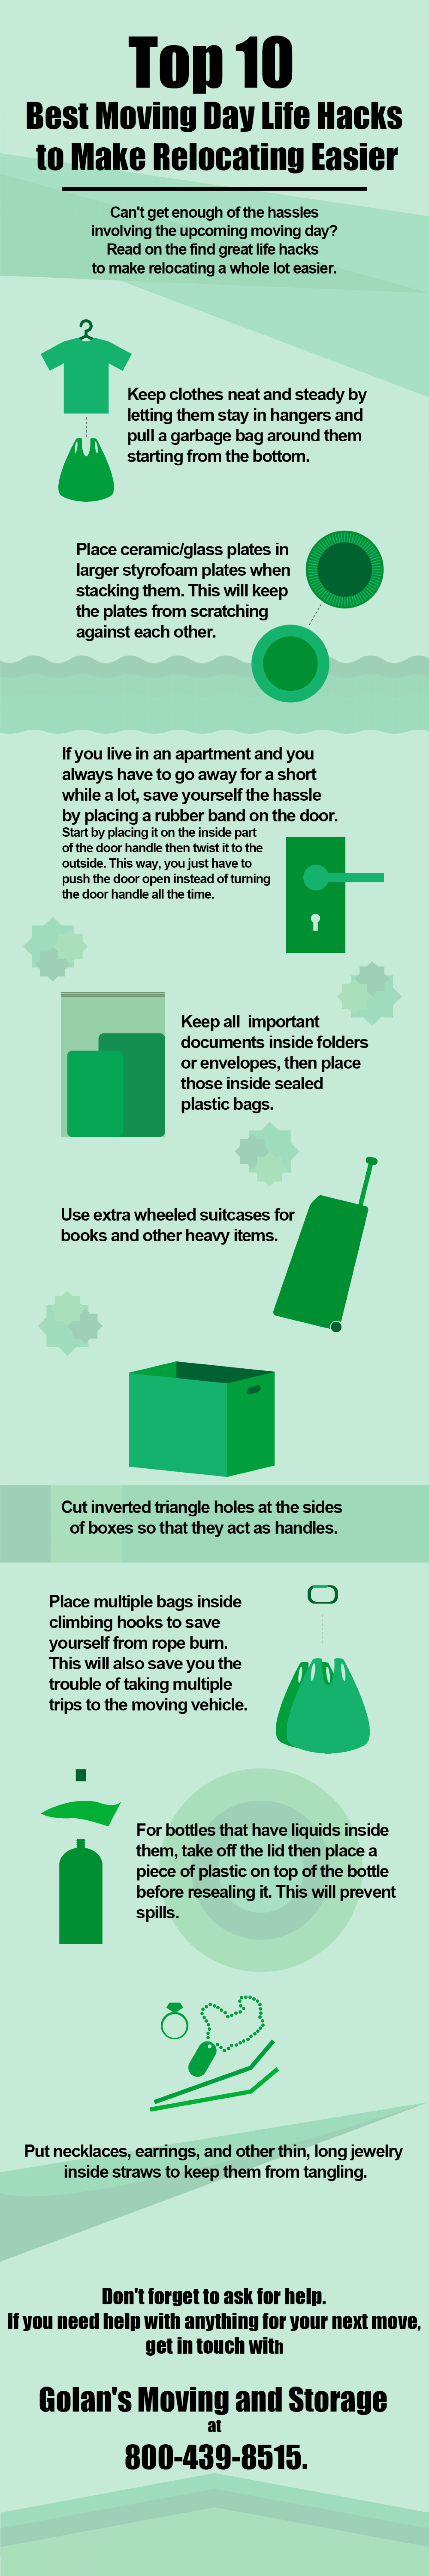 Top 10 Moving Day Life Hacks to Make Relocating Easier Infographic